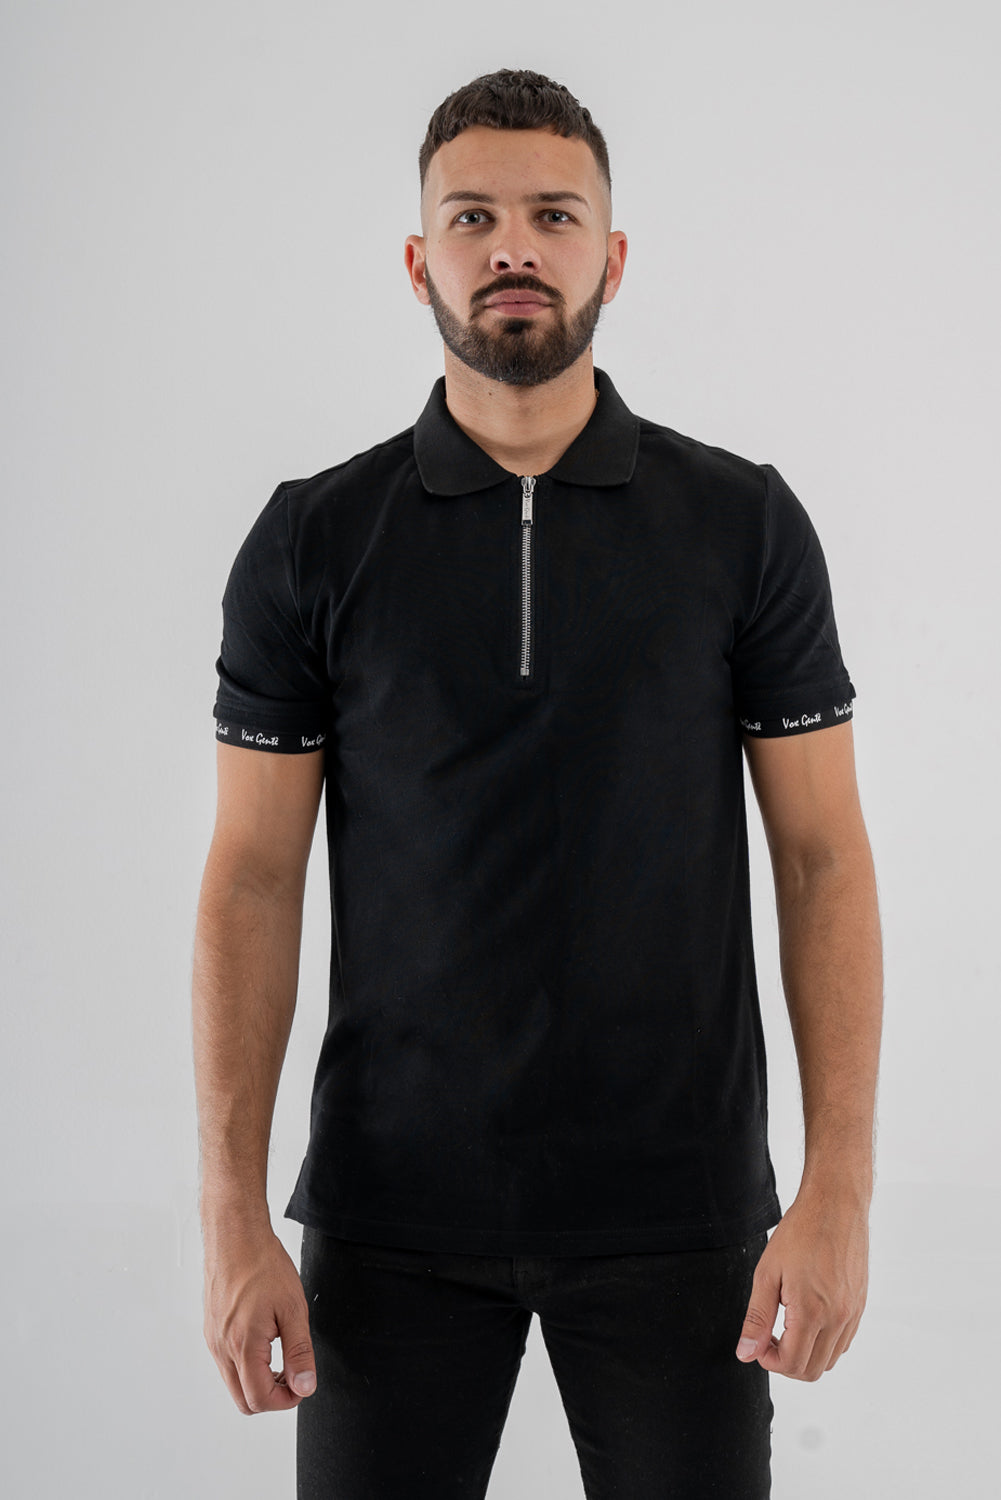 Vox Gente 1/2 Zip Polo Shirt - Black